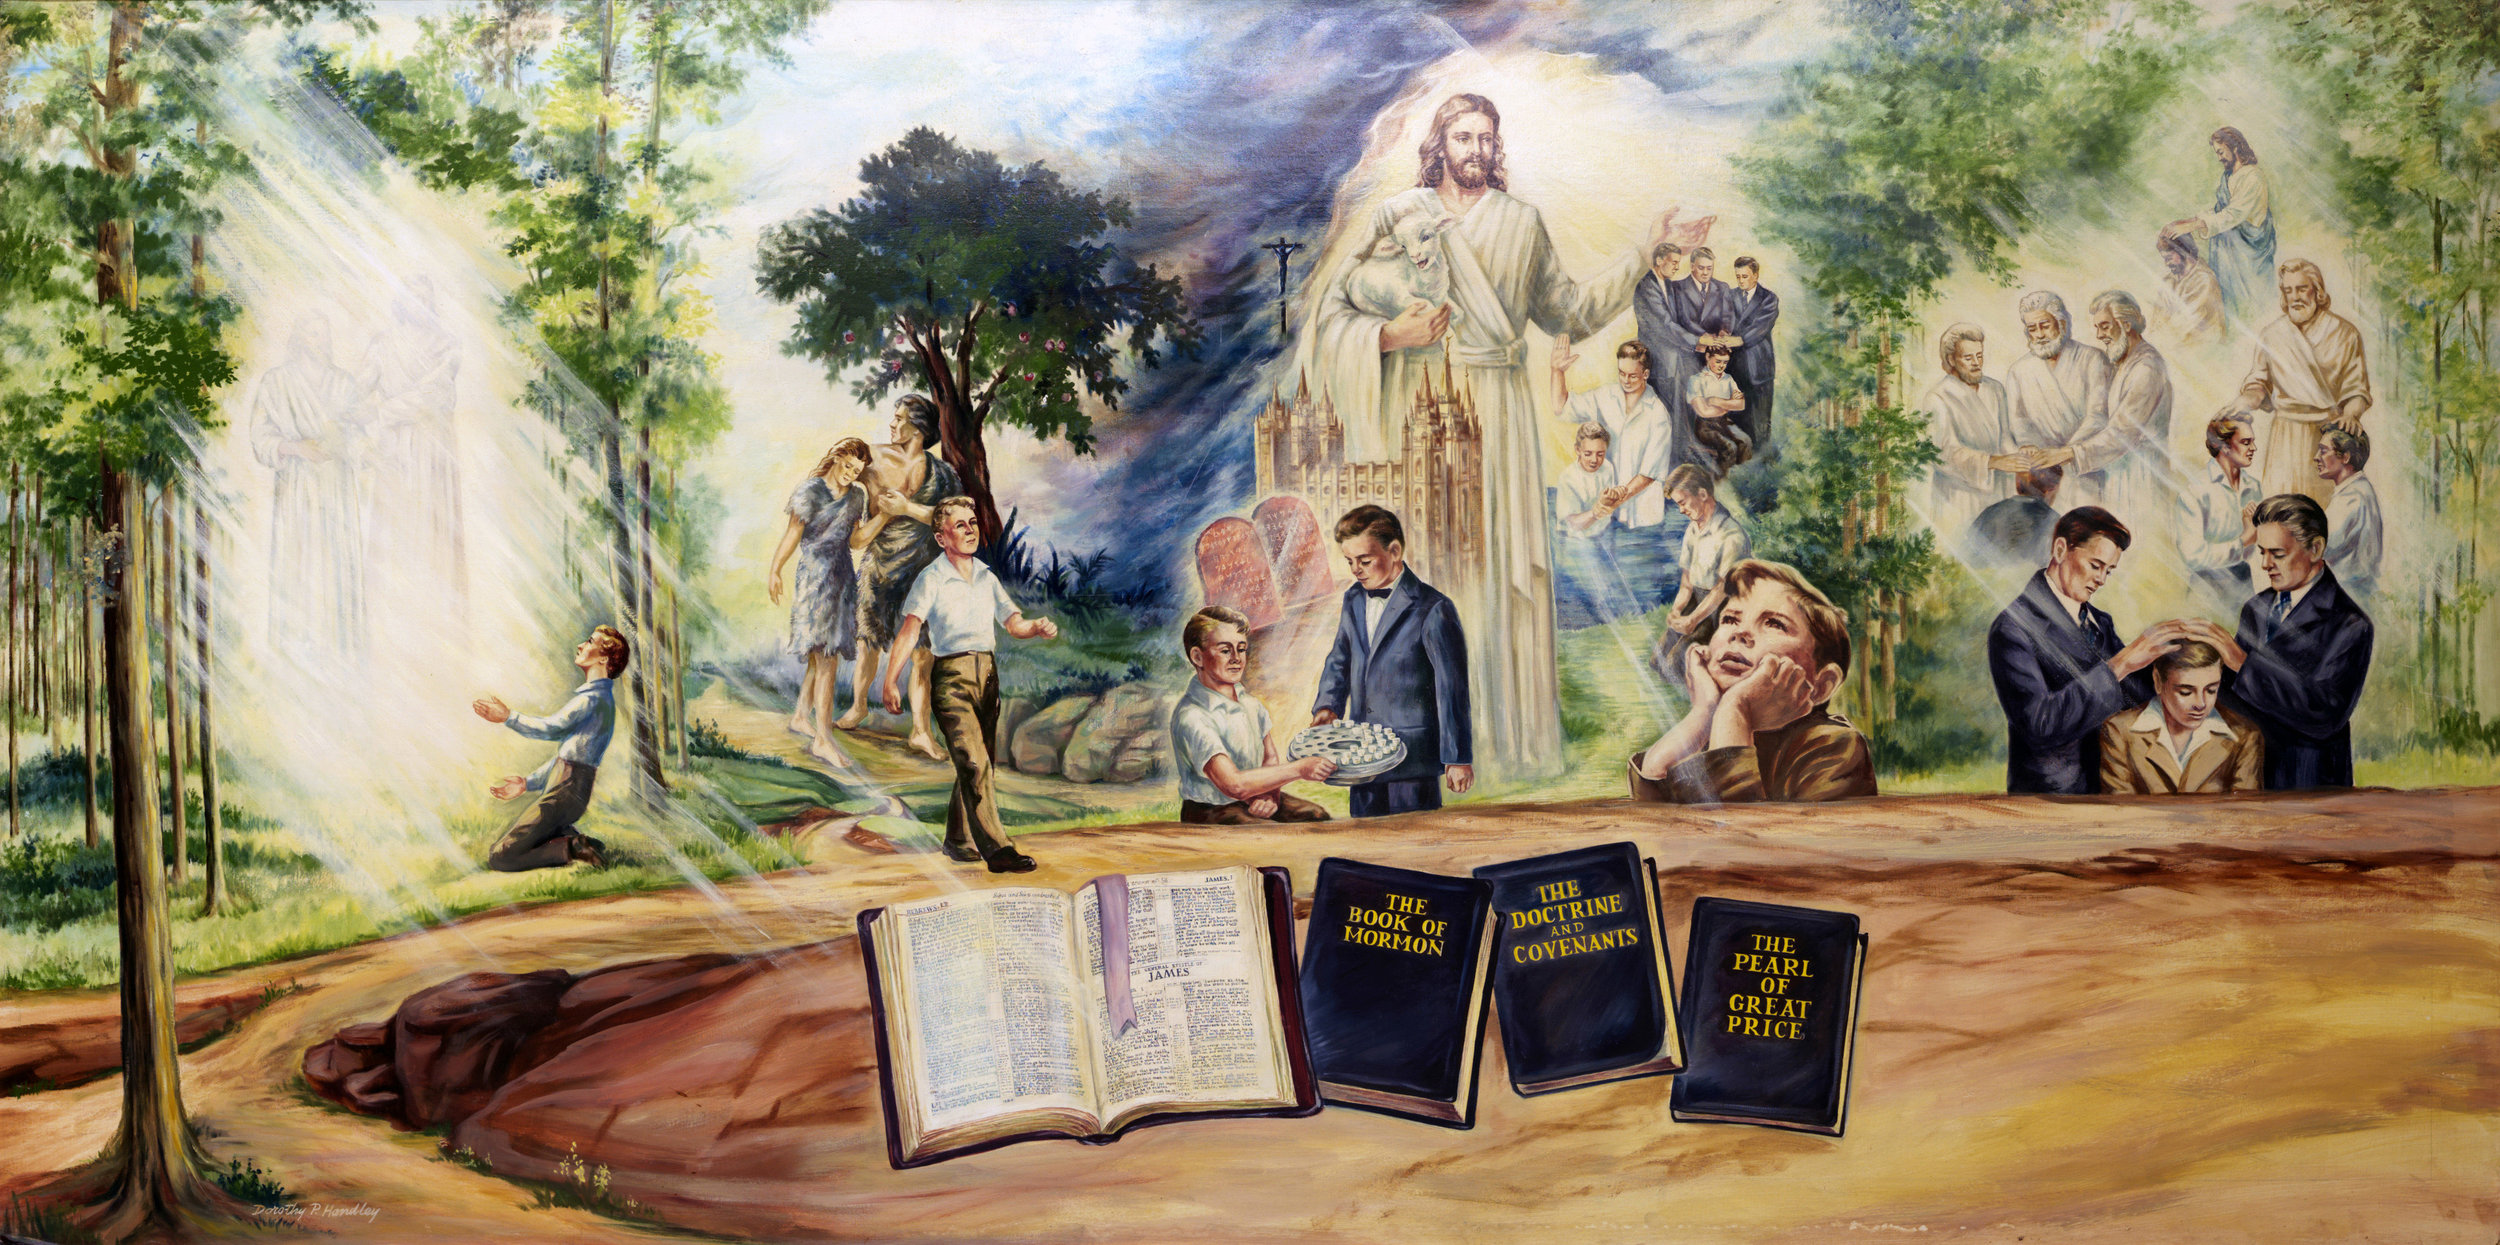 Scenes-from-Biblical-and-Mormon-History-Dorathy-Handley-LDS-55-1780-new.jpg